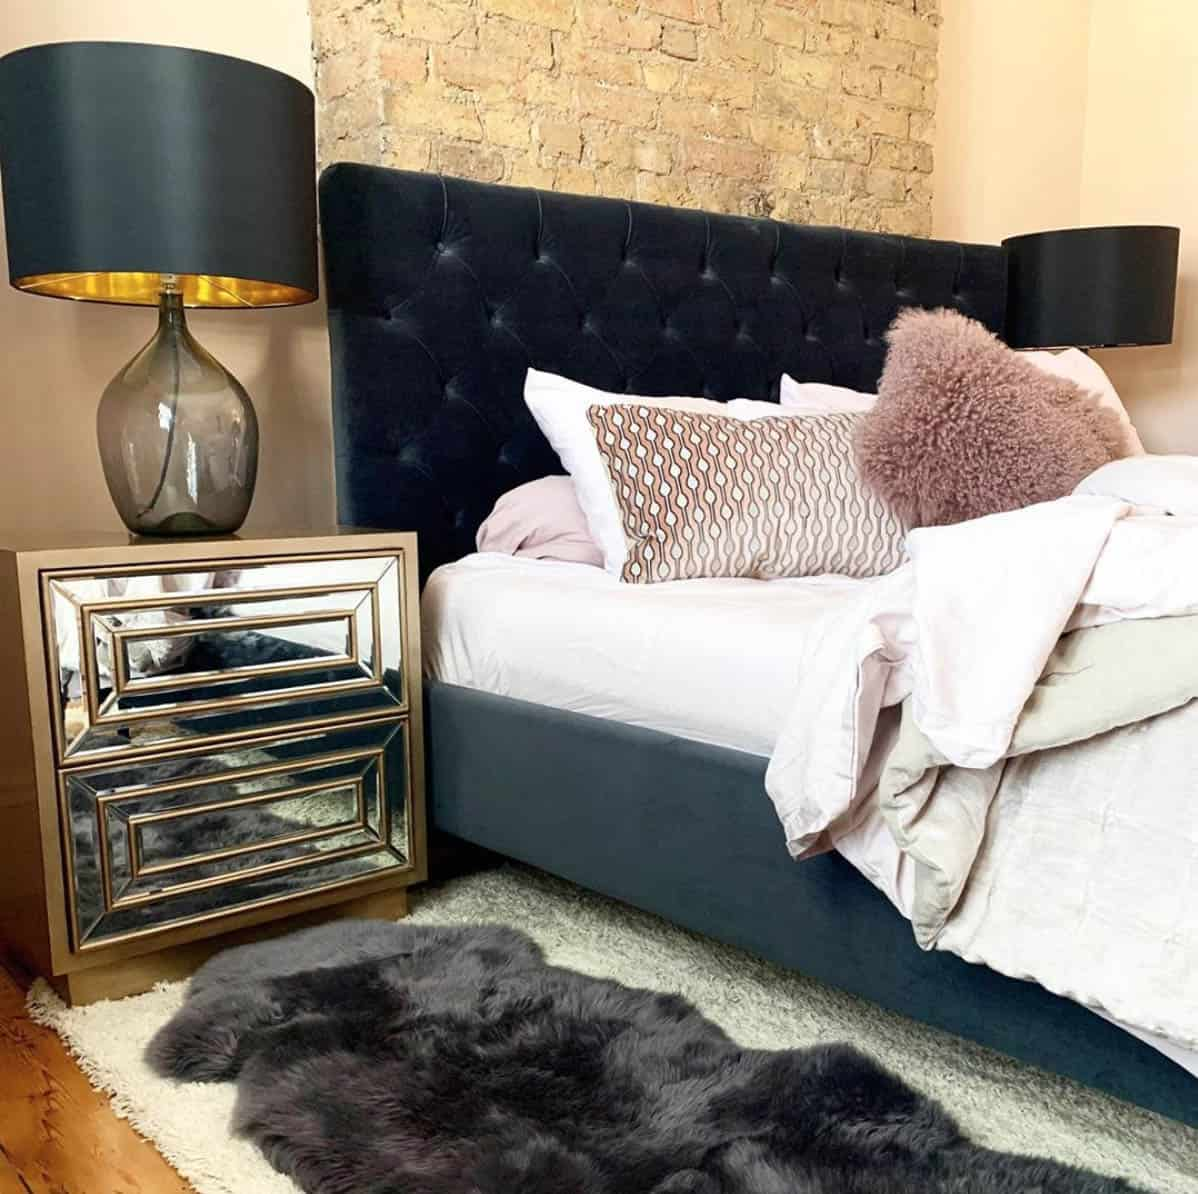 10 Cozy Ways to Create the Ultimate Hygge Bedroom 11